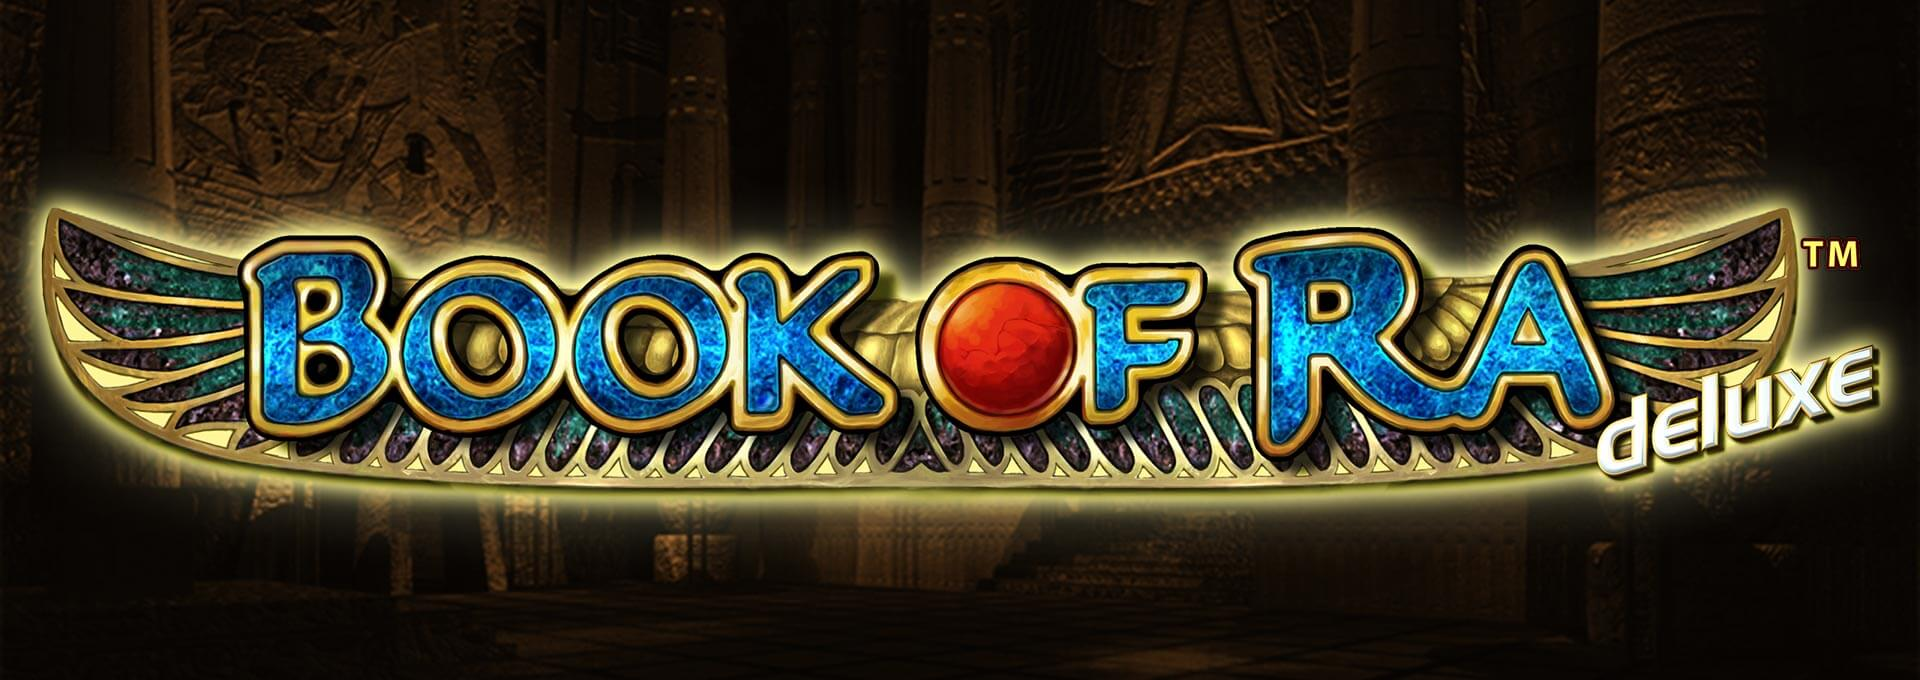 casino online play book of ra free download